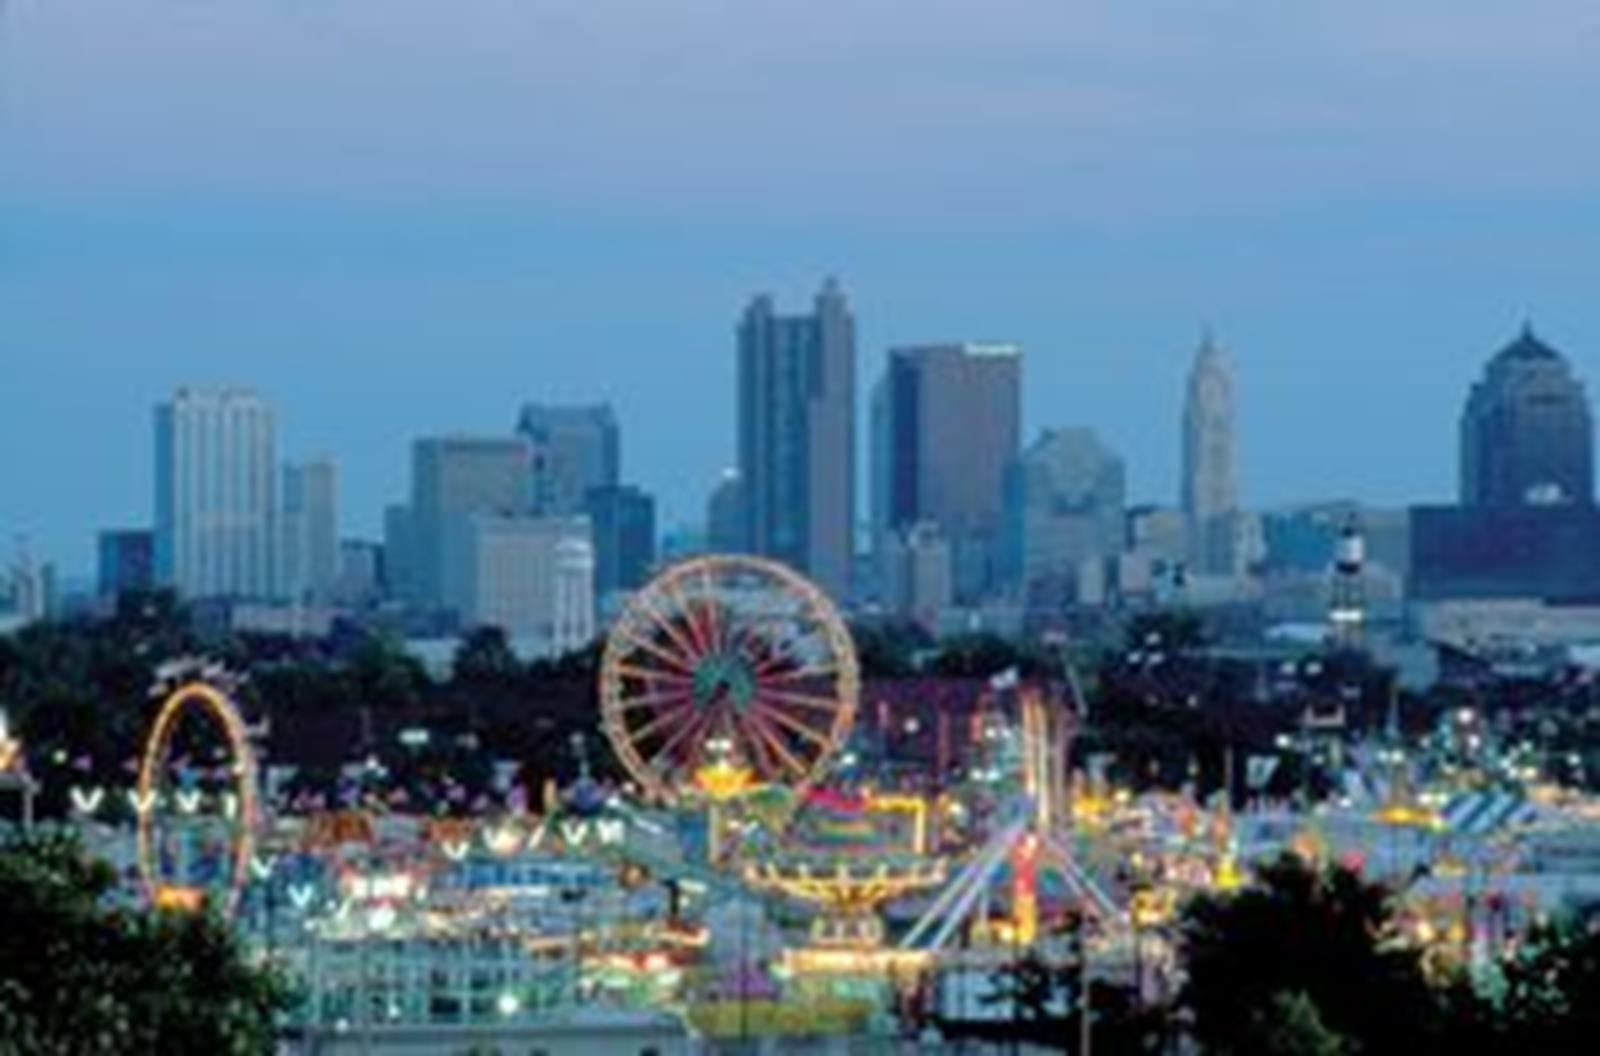 Explore columbus ohio 39 s historic churches cathedrals and for Craft show ohio state fairgrounds